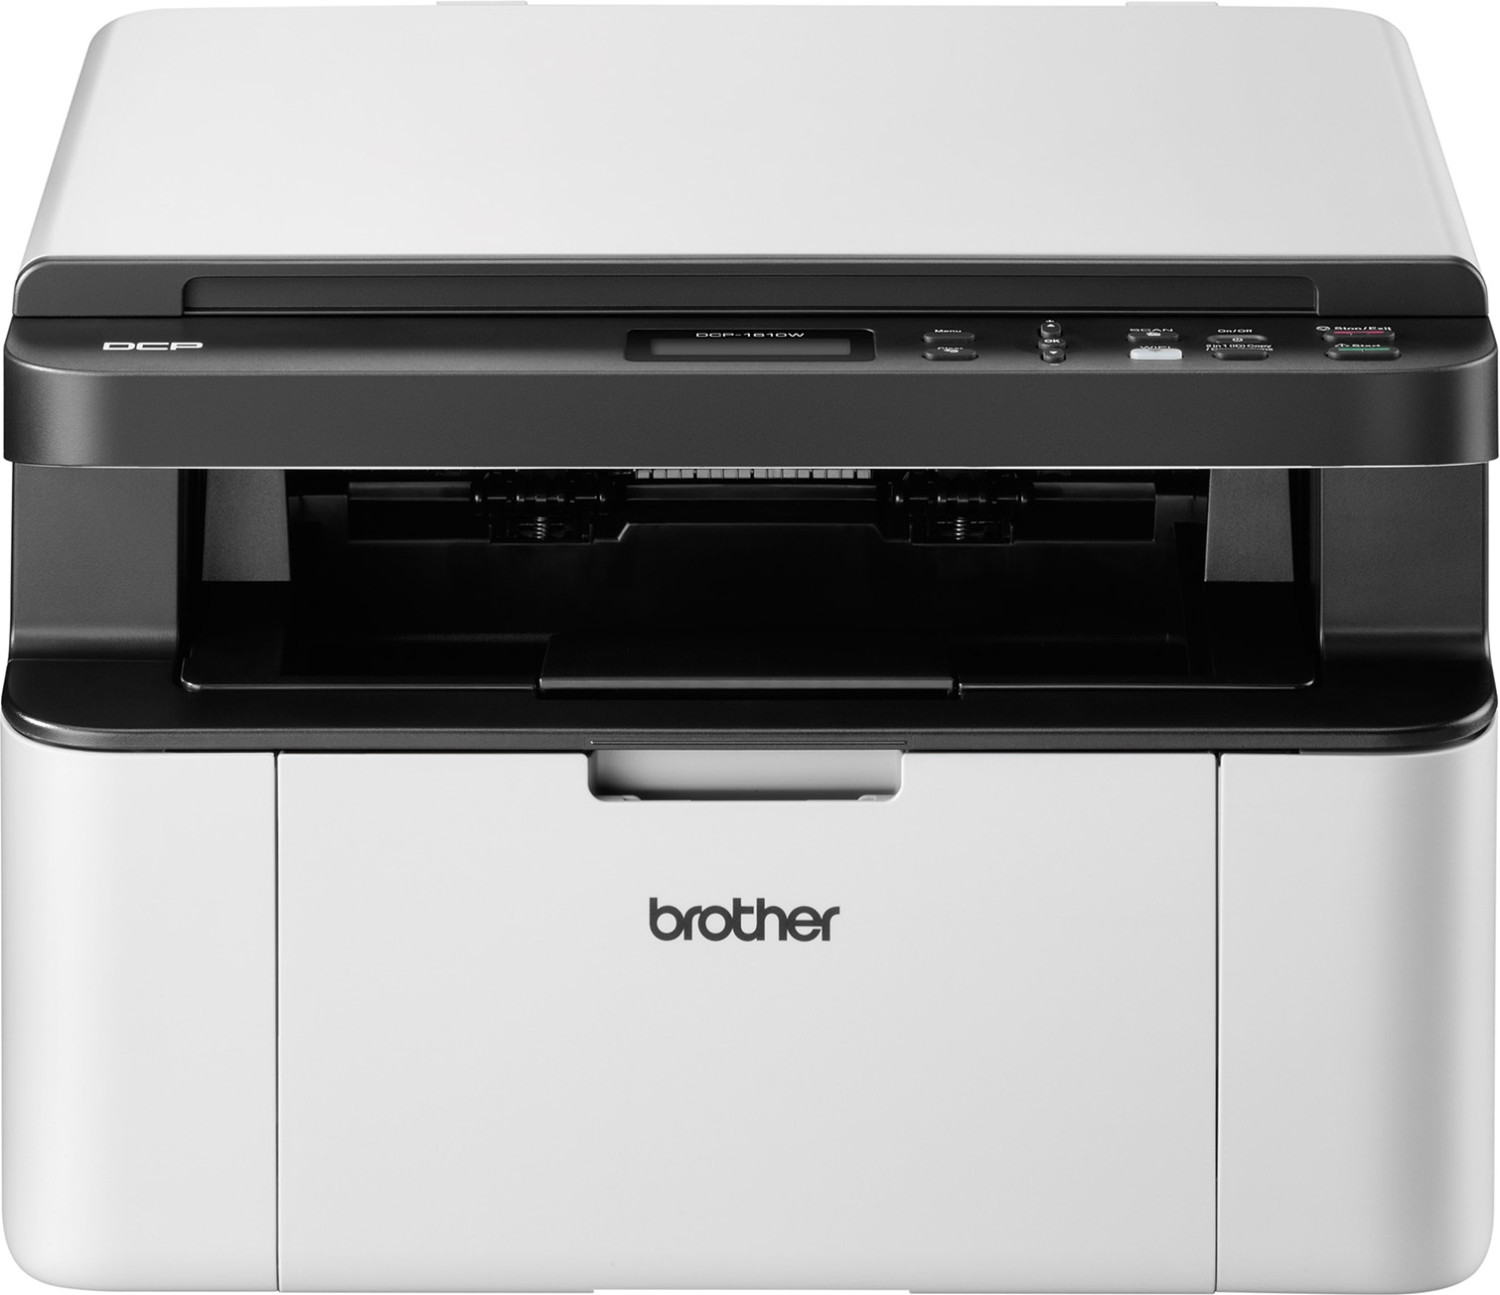 Image of Brother DCP-1610W